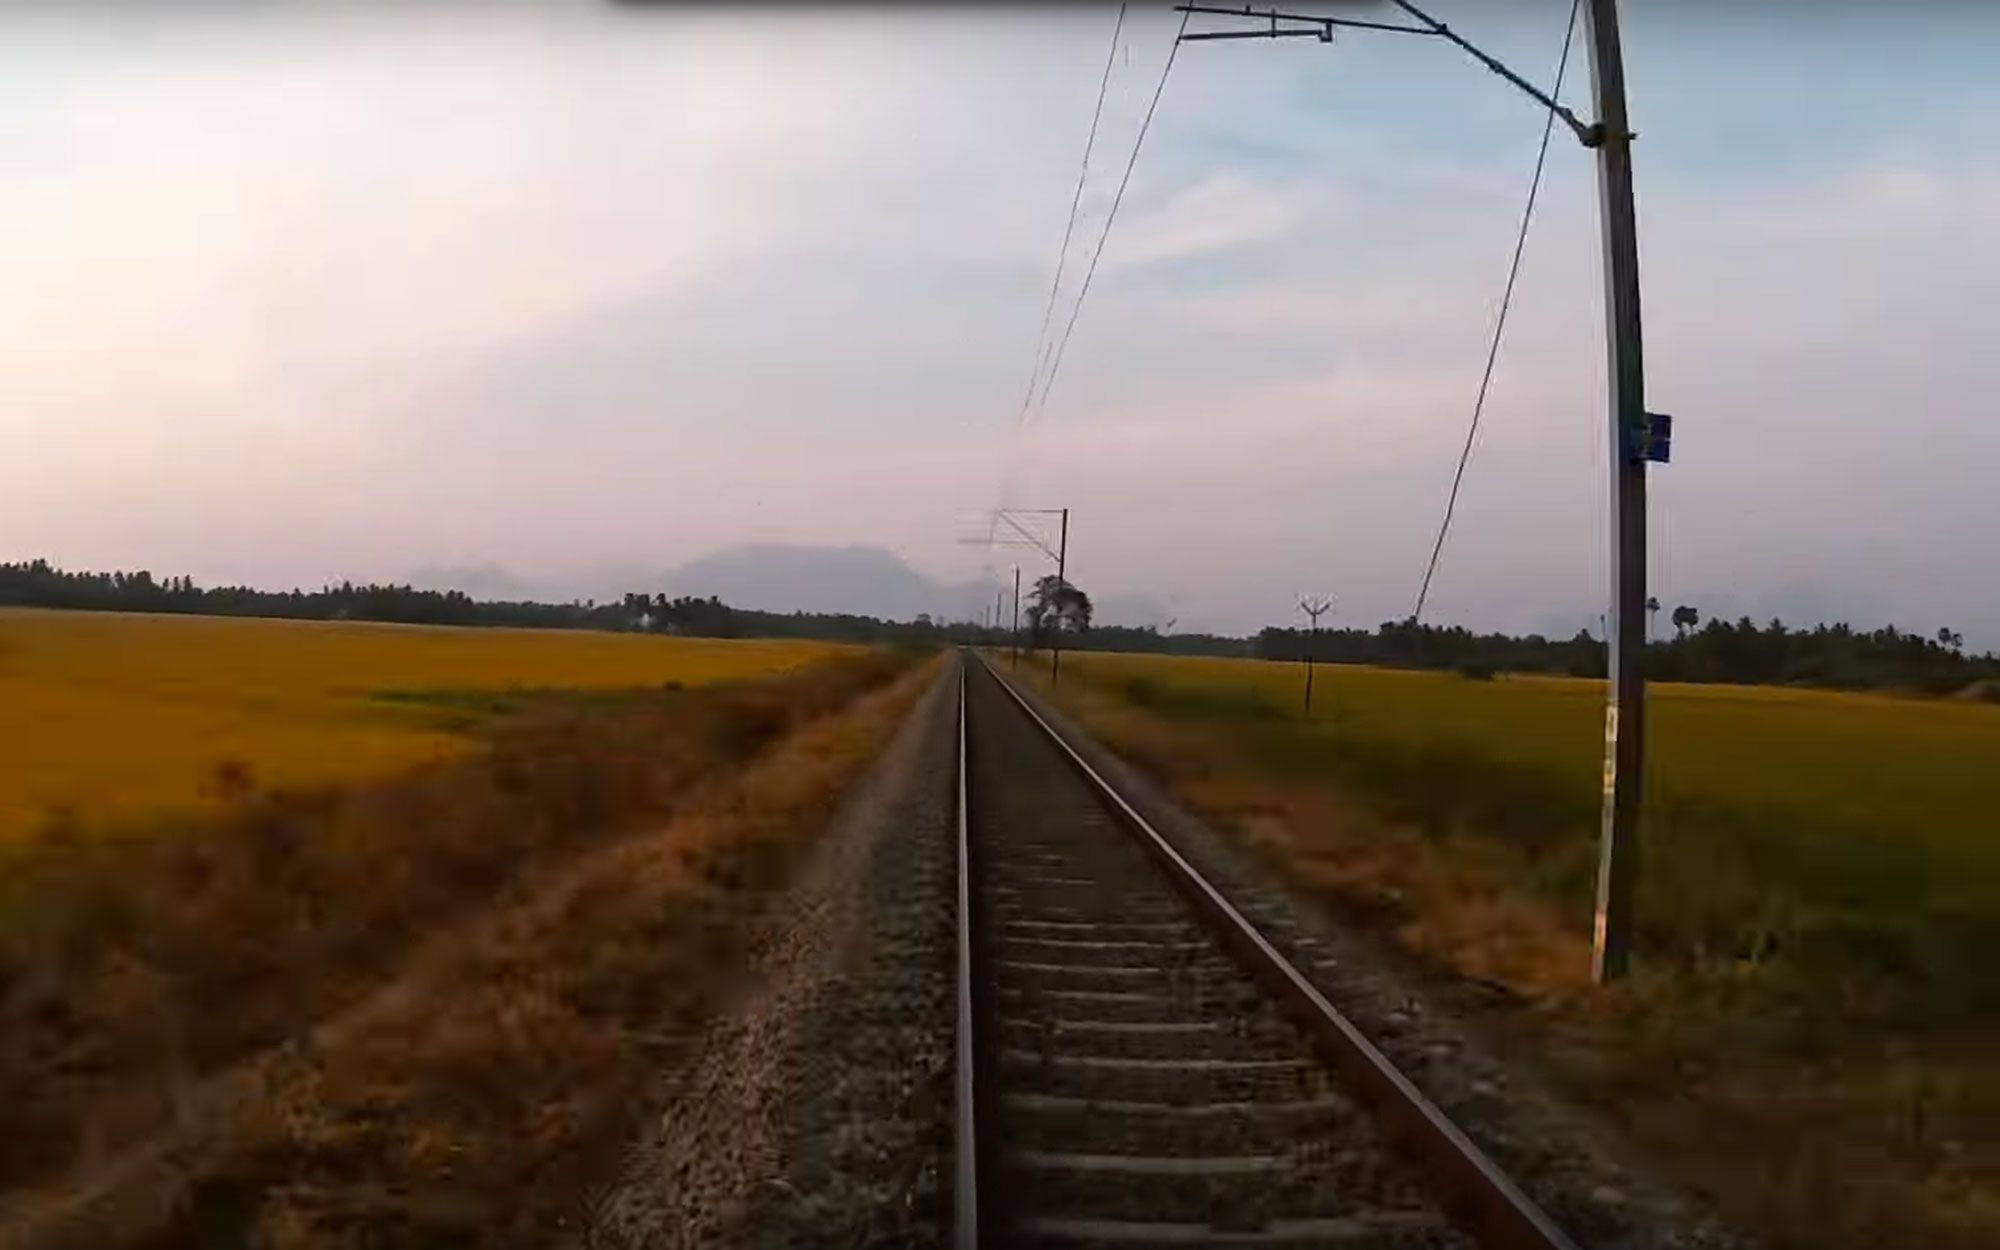 Video: Timelapse from the Longest Train Ride in India